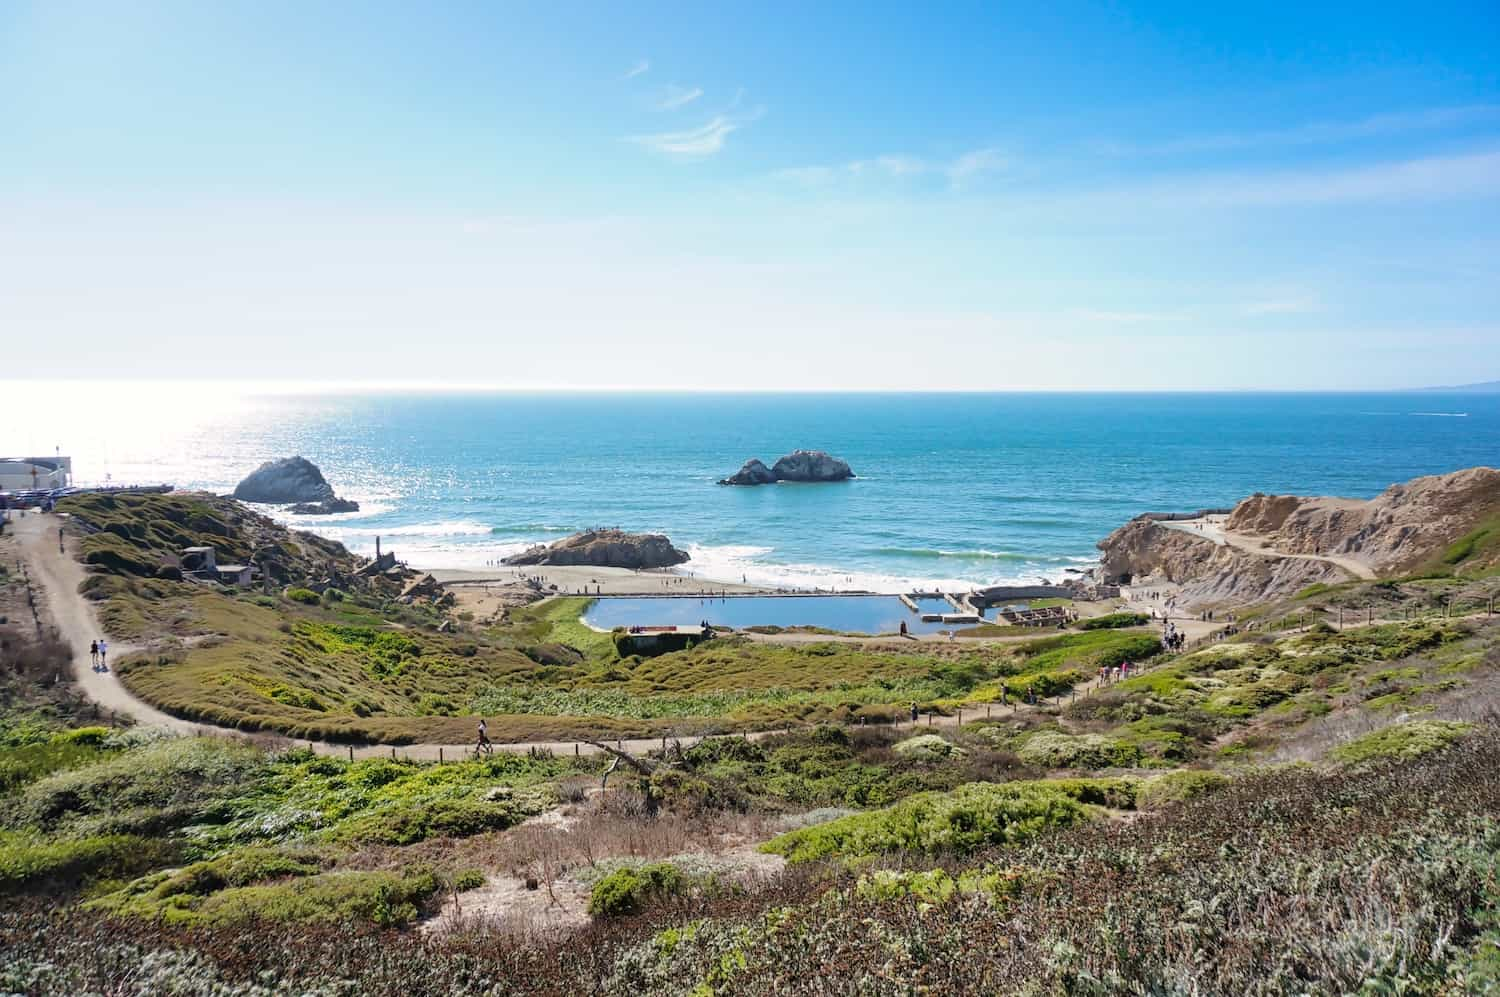 3 Days in San Francisco - Sutro Baths